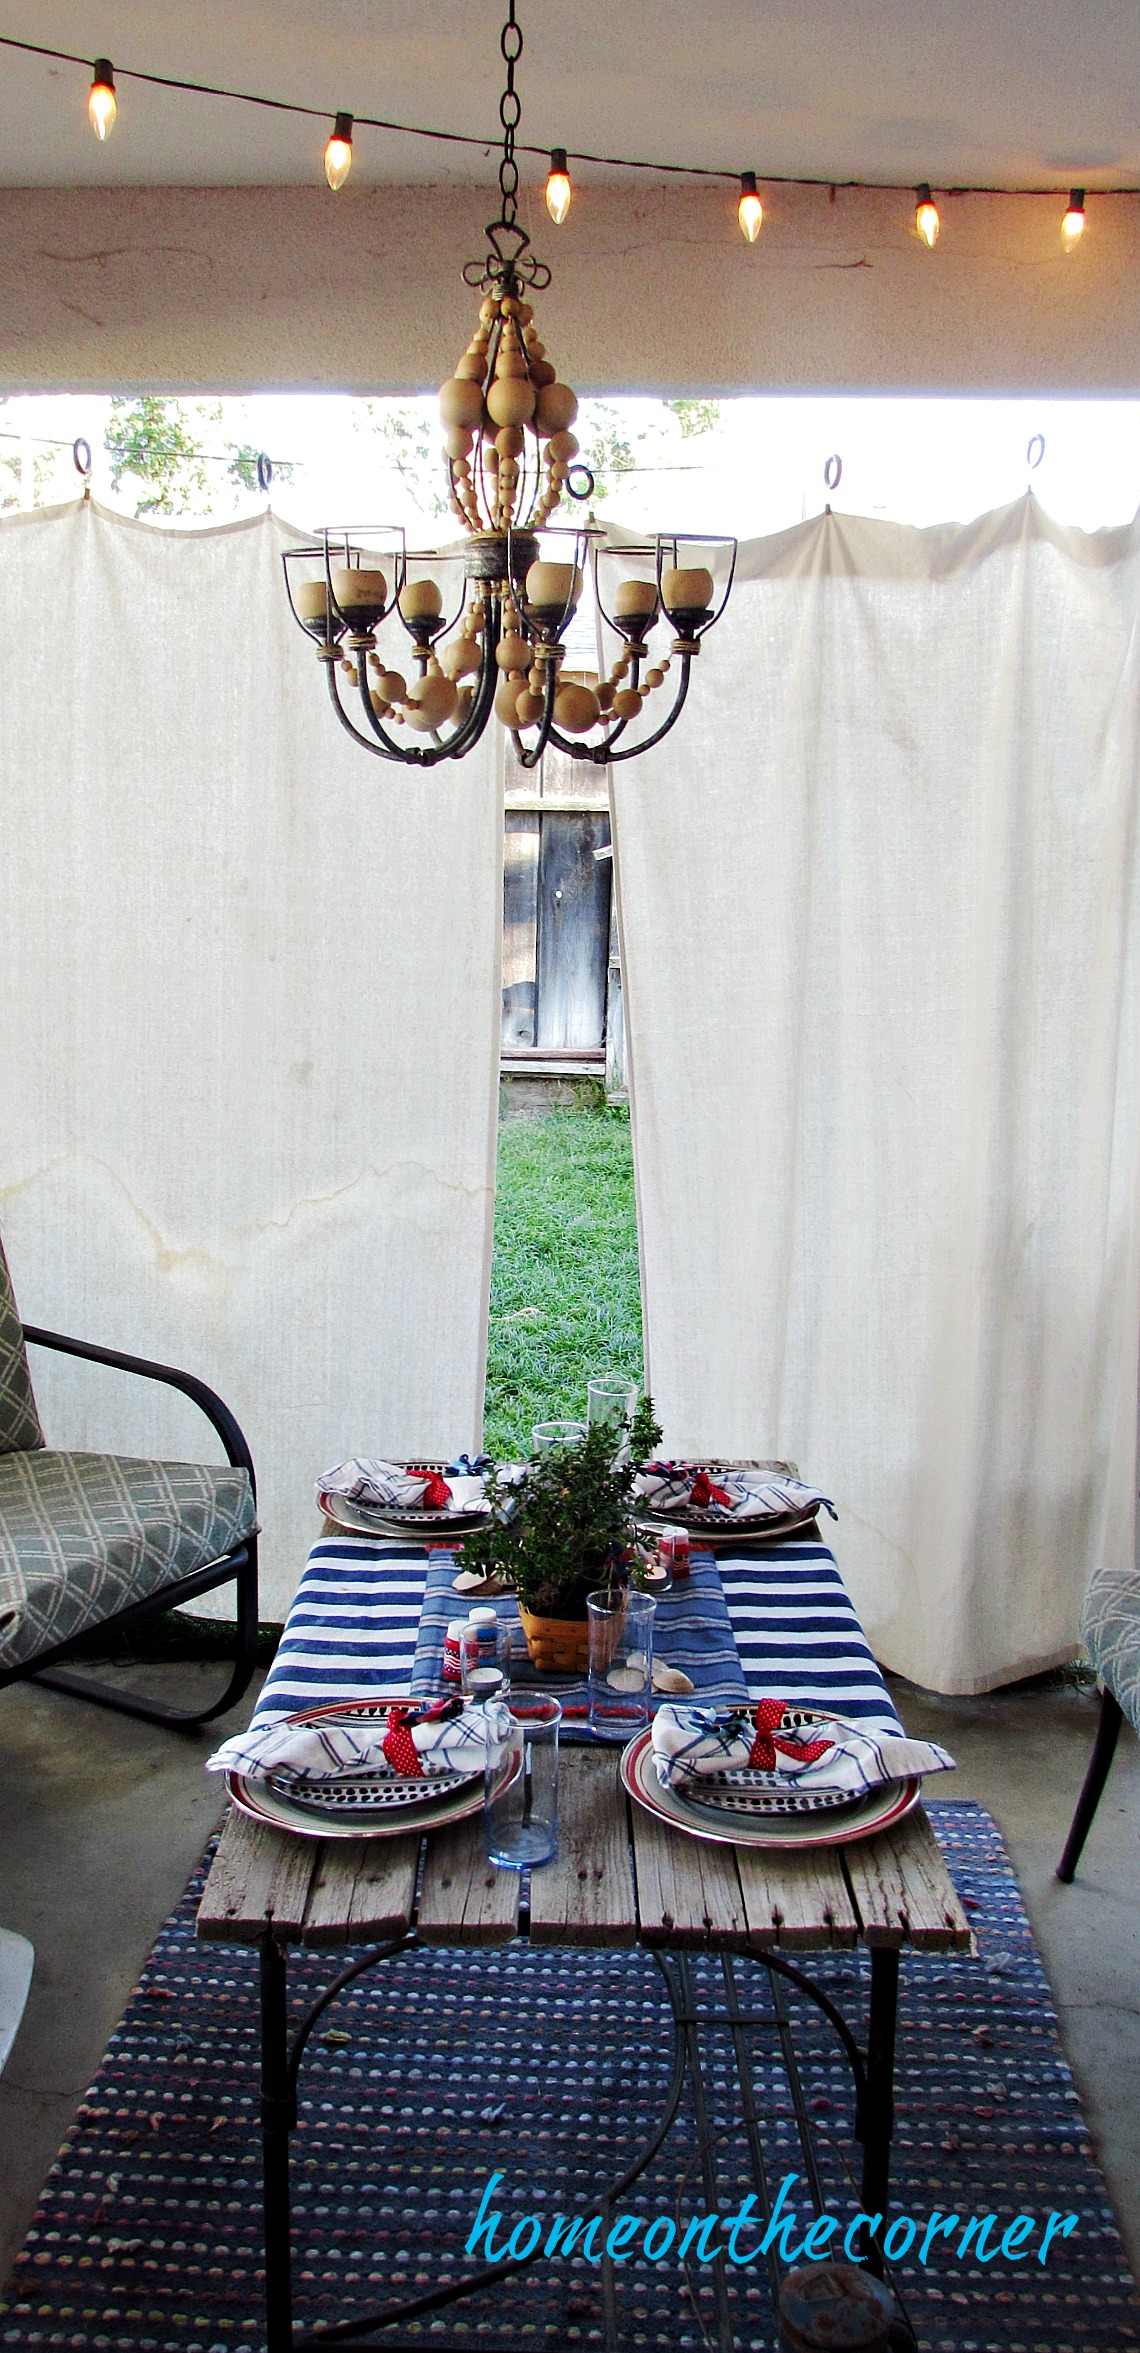 Red, white and blue patio dining